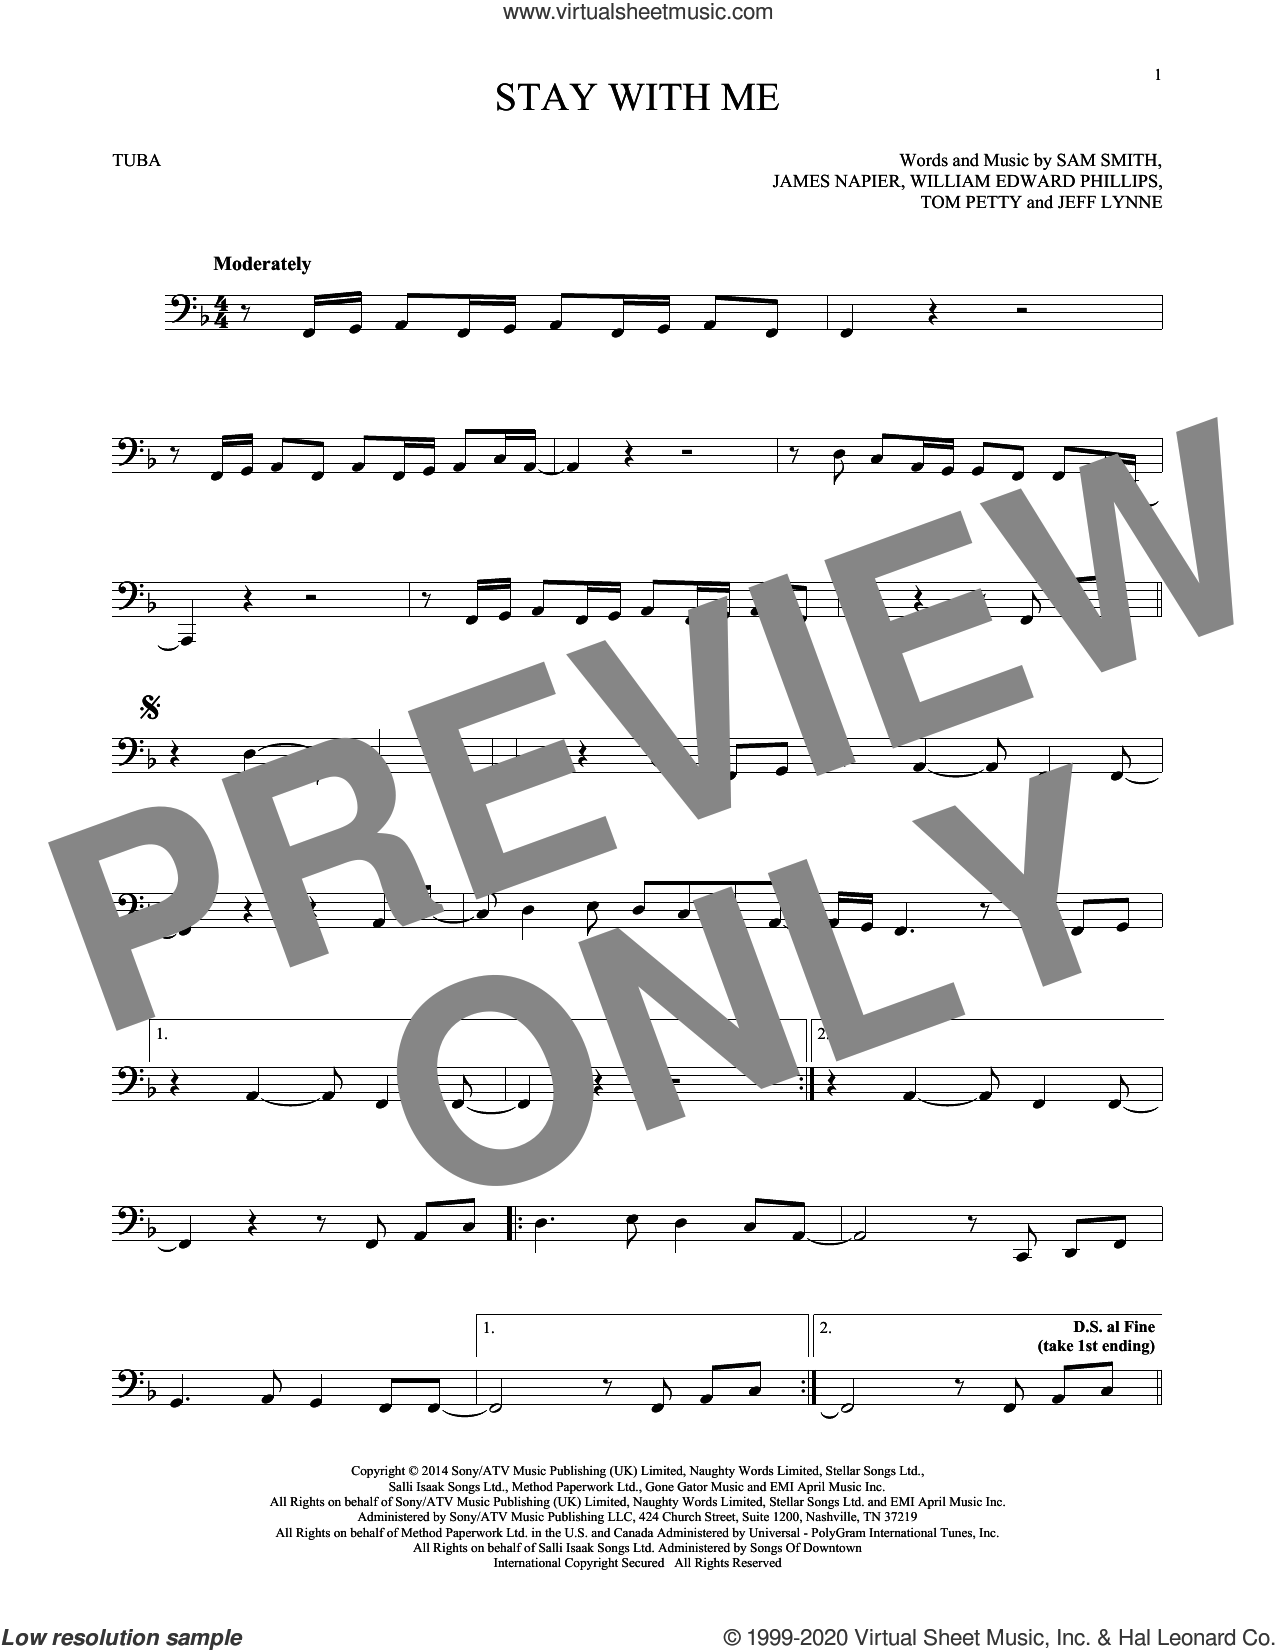 Stay With Me sheet music for Tuba Solo (tuba) by Sam Smith, James Napier, Jeff Lynne, Tom Petty and William Edward Phillips, intermediate skill level